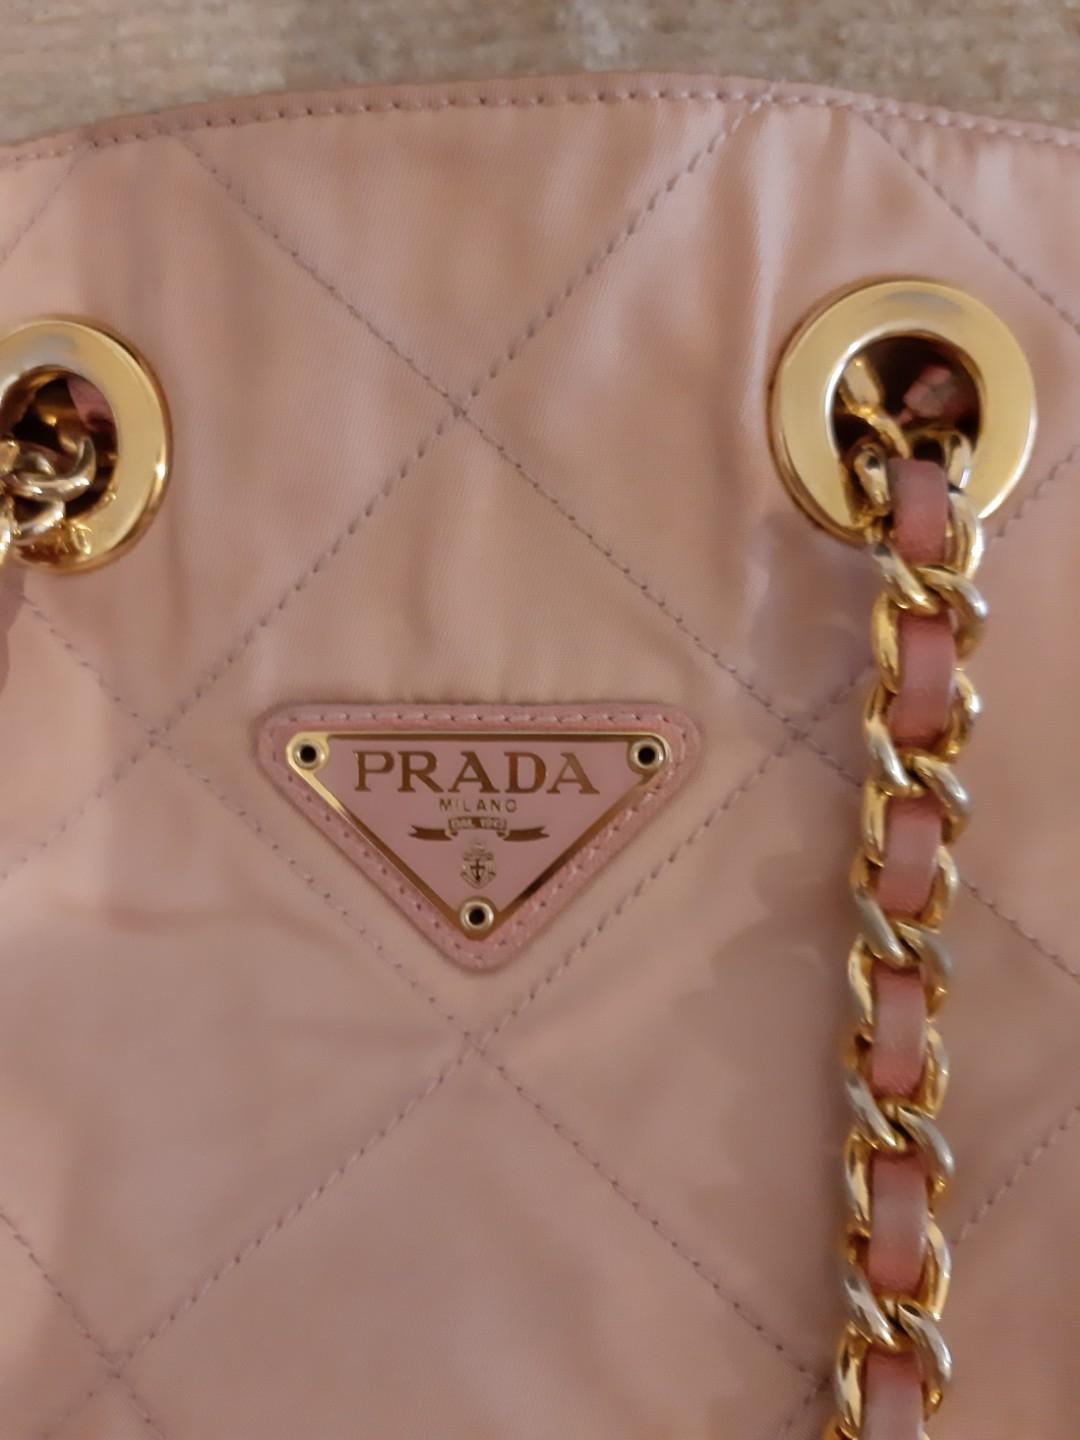 AUTHENTIC PRADA CHAIN SHOULDER BAG- BABY PINK COLOUR- CLEAN INTERIOR, OVERALL IN GOOD CONDITION - (PRADA CHAIN SHOULDER BAGS NOW RETAIL OVER RM 5000+) - RM 360 ONLY